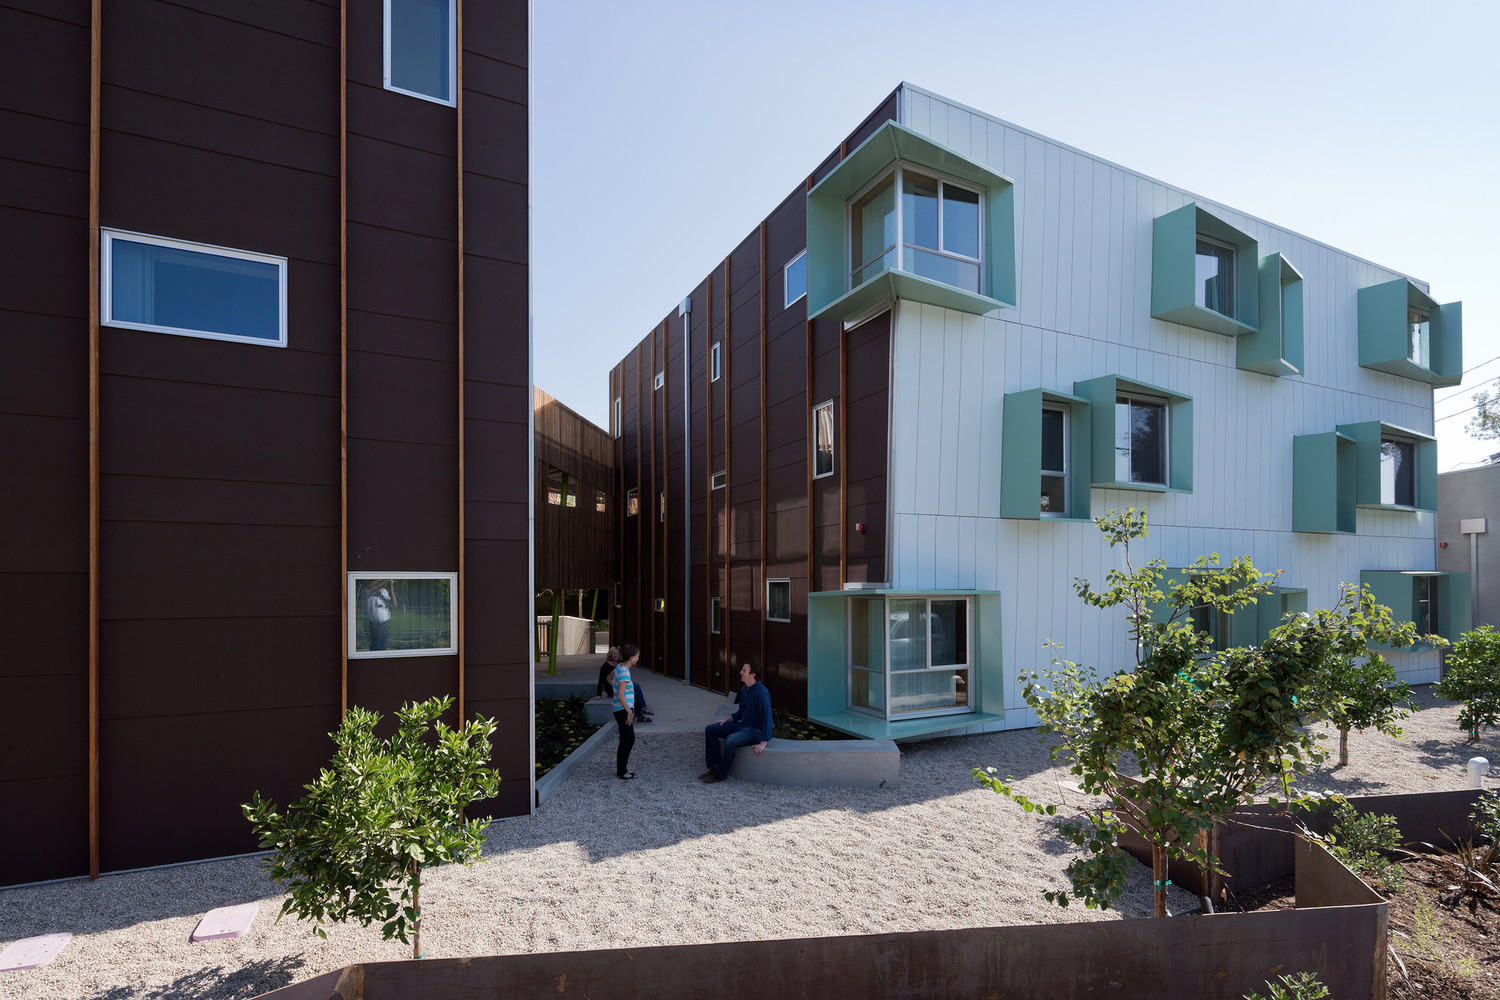 affordable housing student design - HD1500×1000